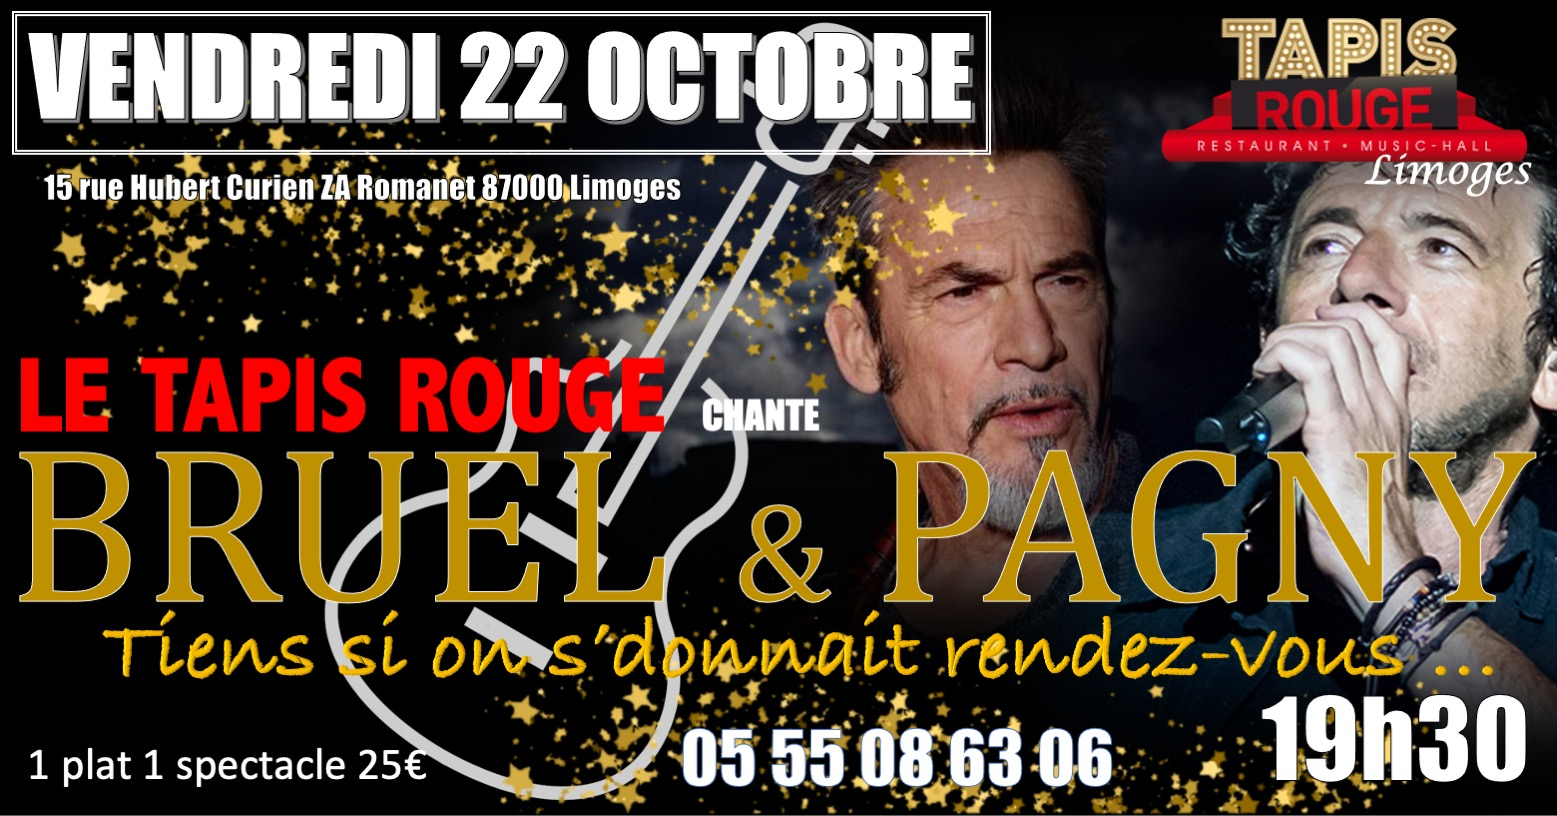 AFFICHE BRUEL PAGNY